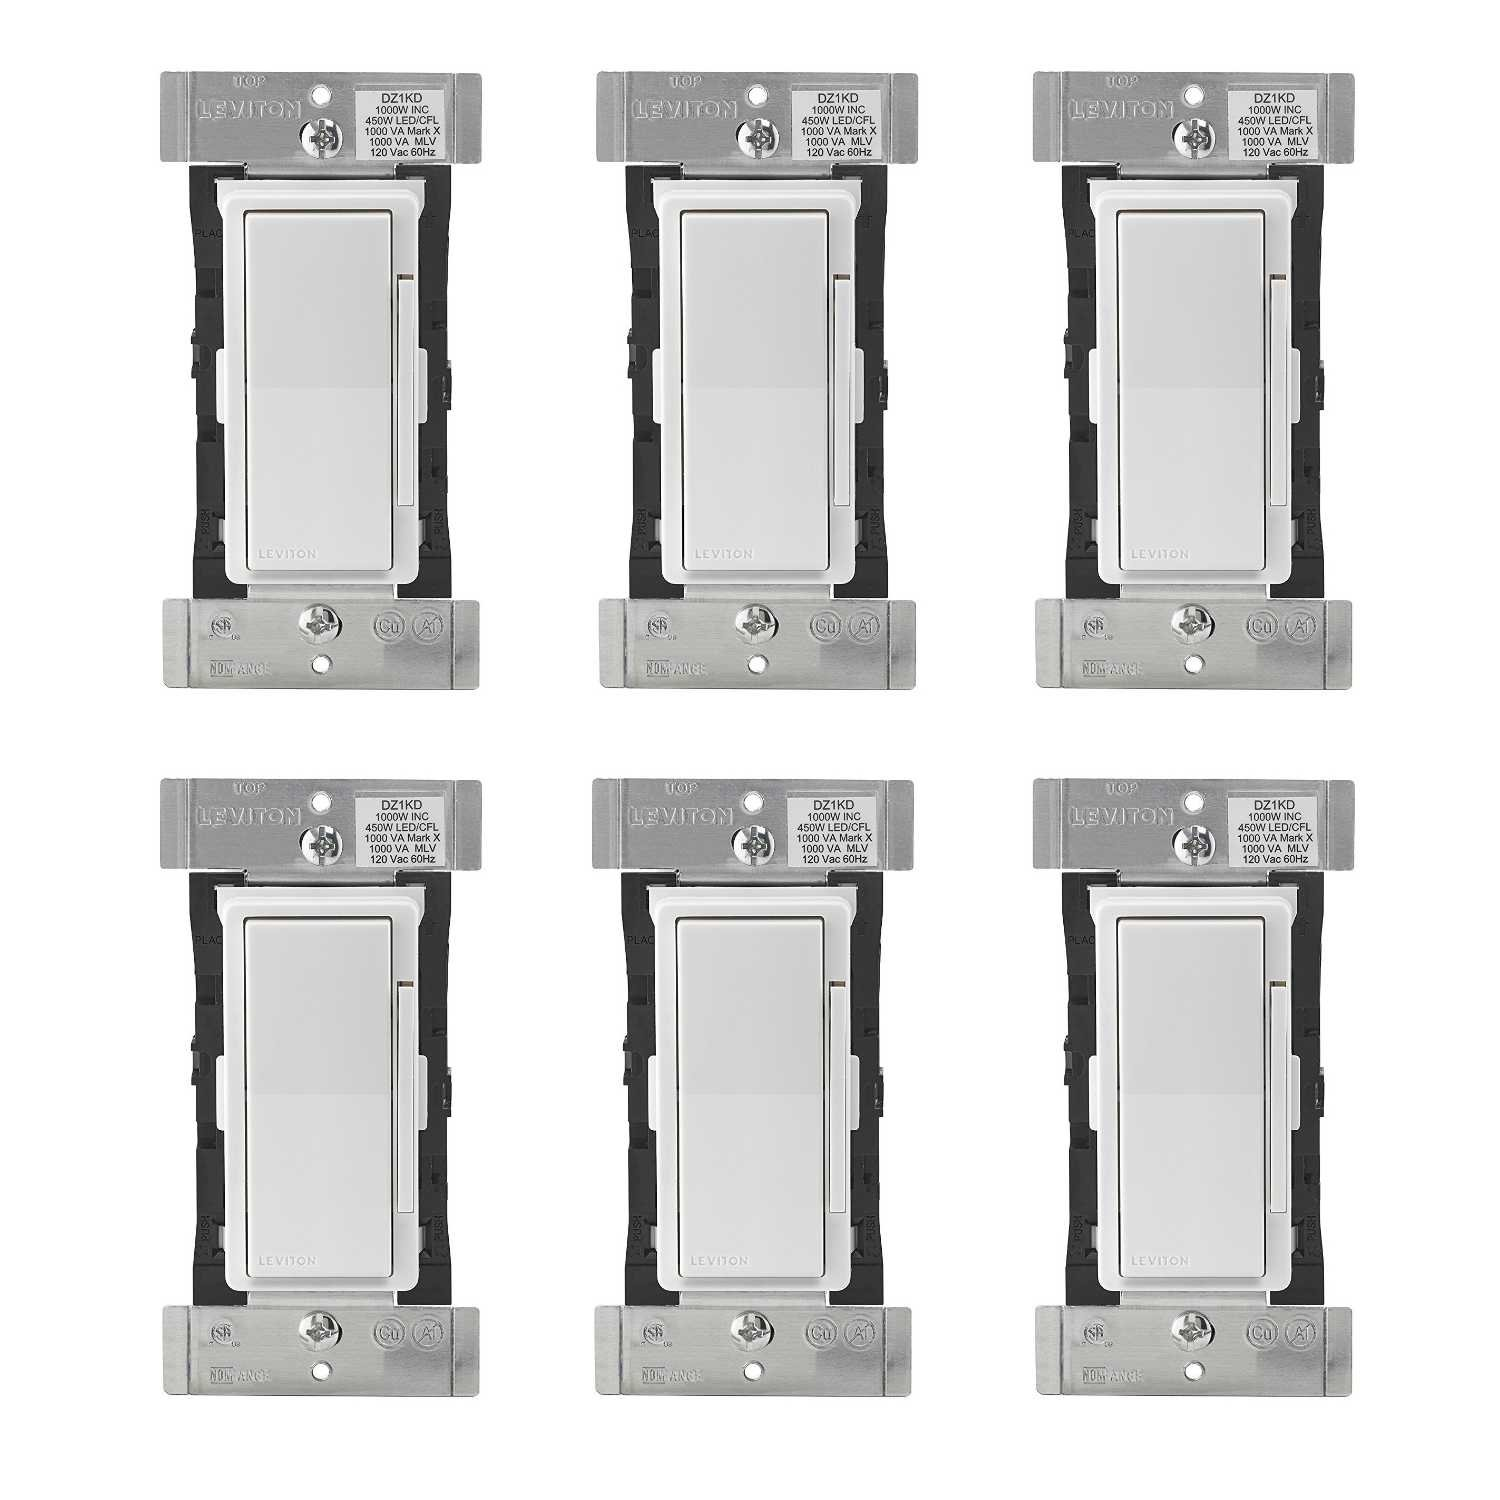 Leviton DZ1KD-1BZ Decora Smart 1000W Dimmer with Z-Wave Plus Technology, Works with Amazon Alexa (6 Pack) by Leviton